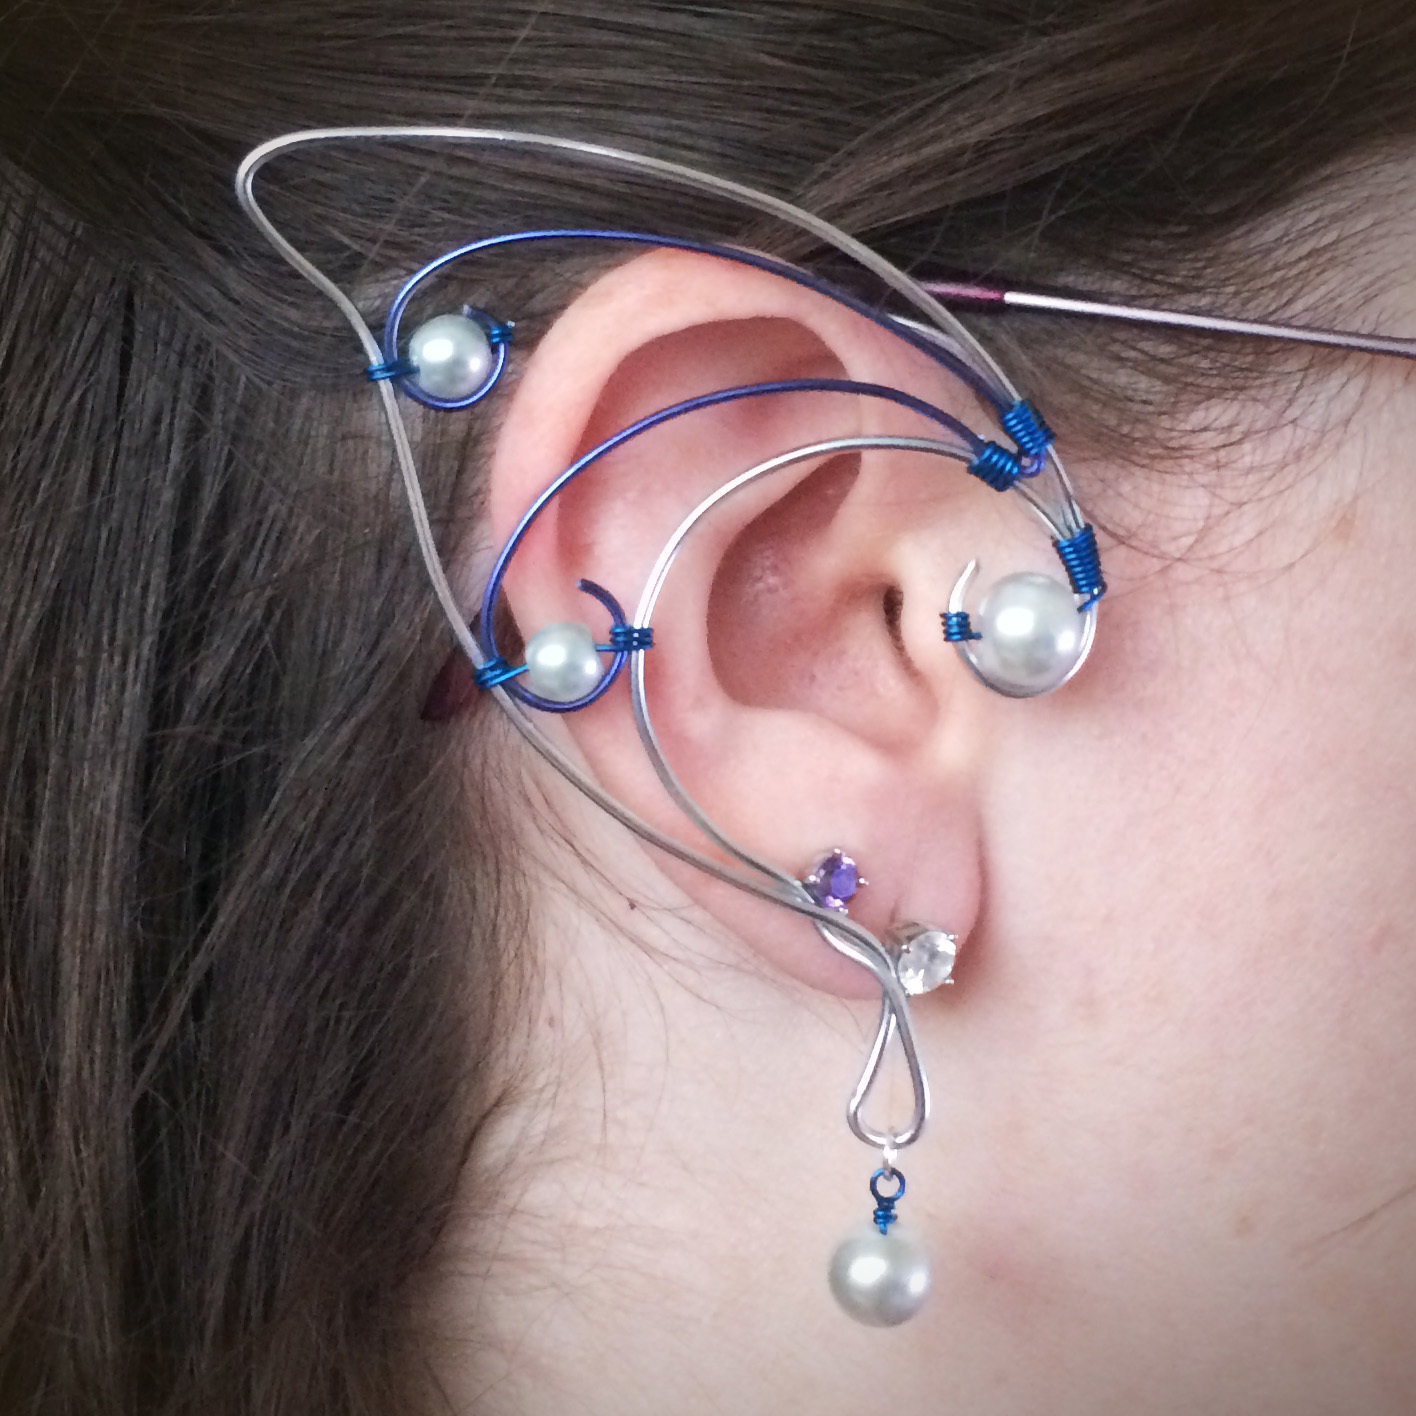 Elf Ear Cuff - Silver and Blue with beads